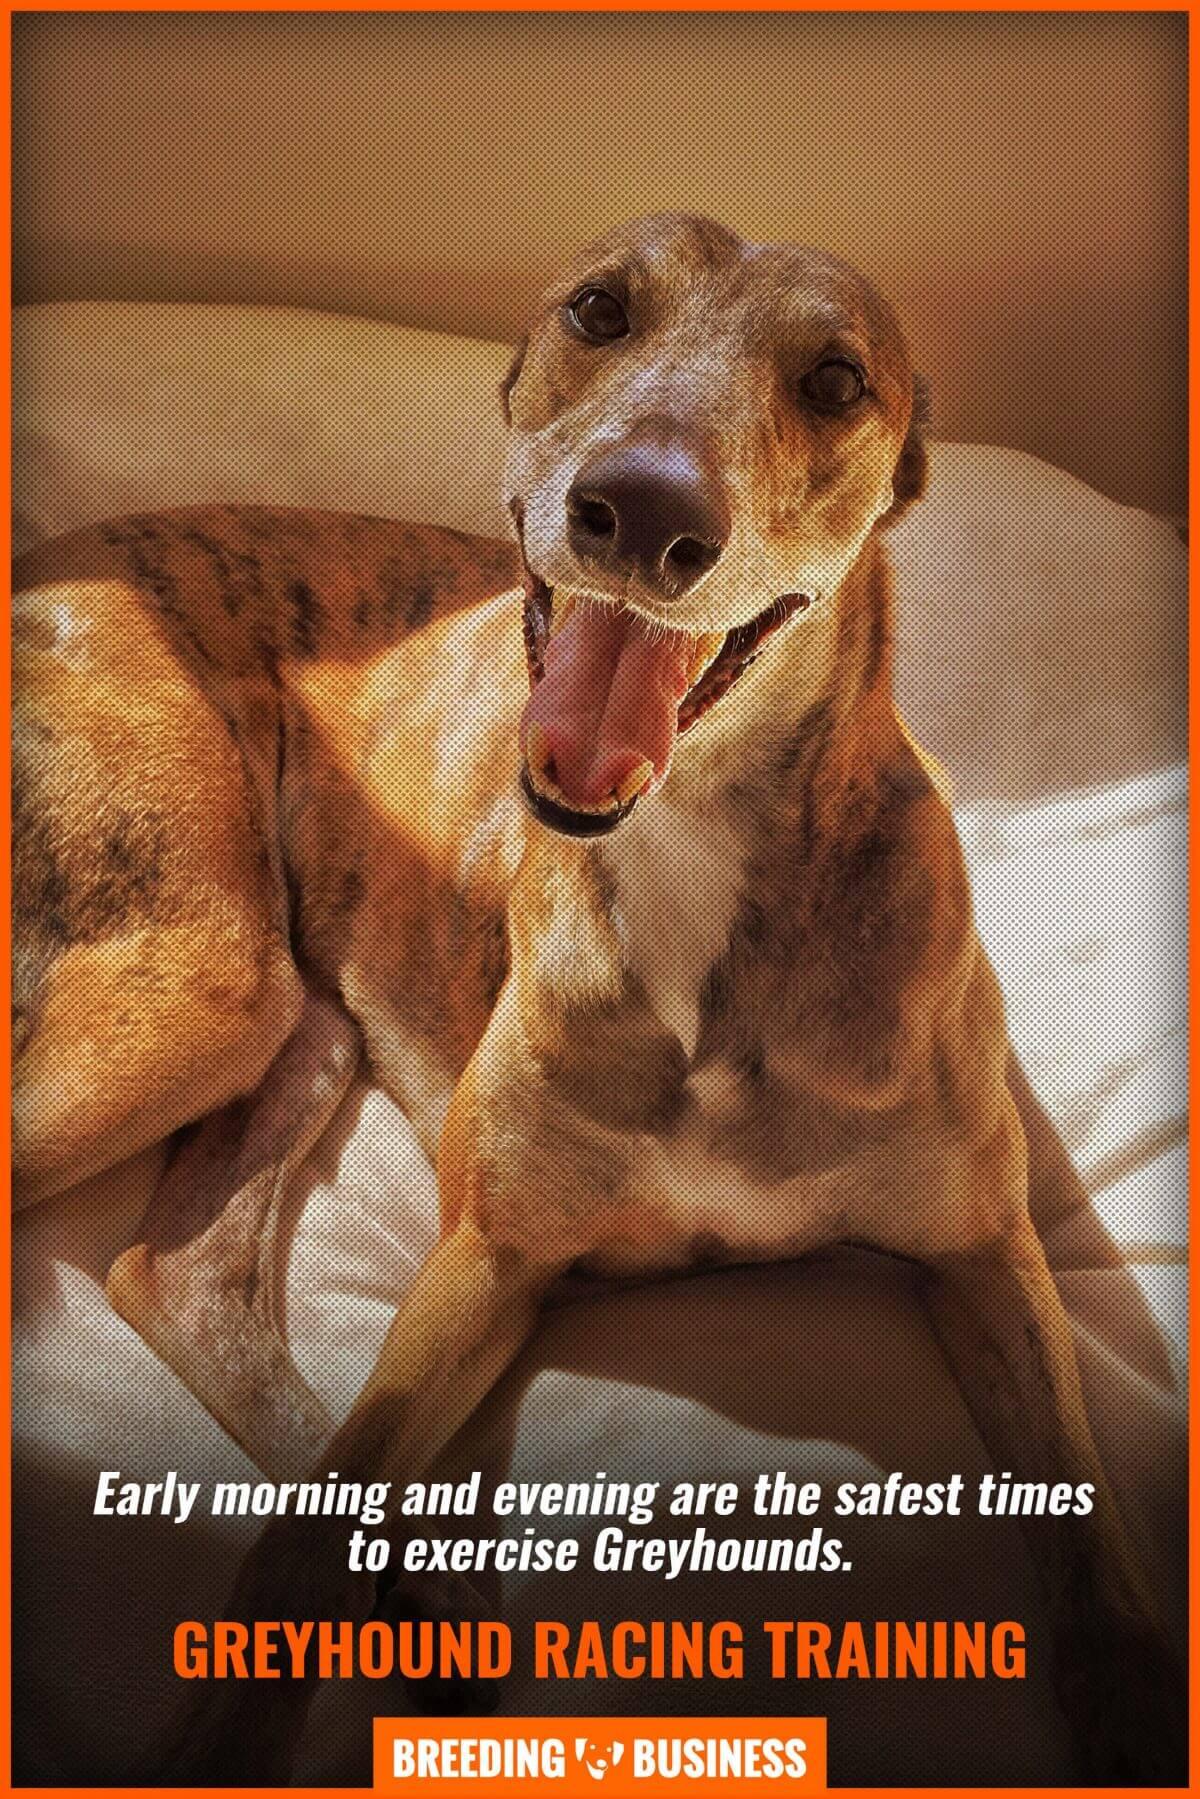 Are Greyhounds morning or evening dogs?